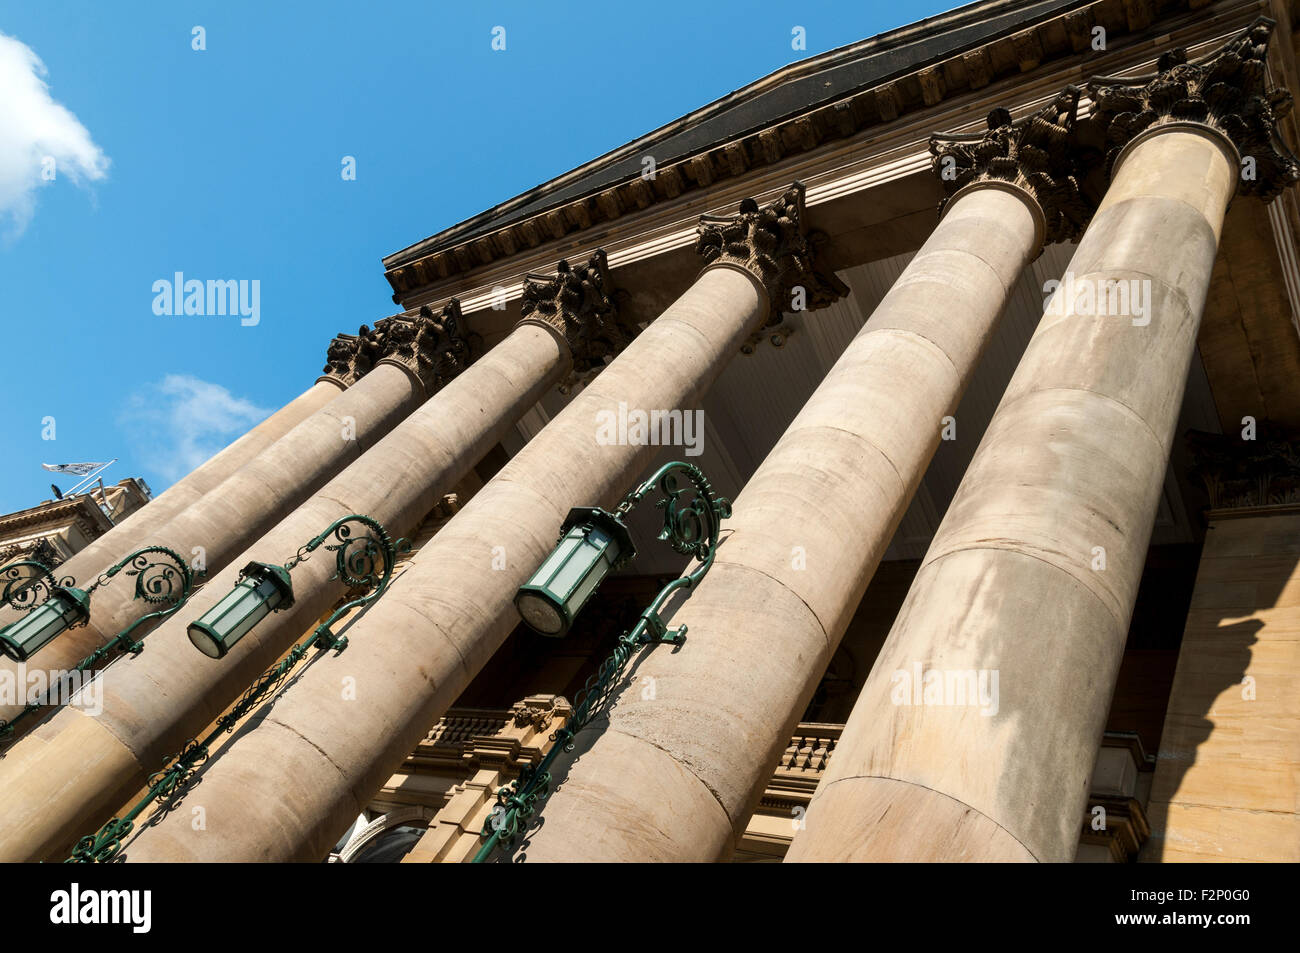 Lamp and columns outside the Theatre Royal, Grey Street, Newcastle upon Tyne, Tyne and Wear, England, UK. - Stock Image